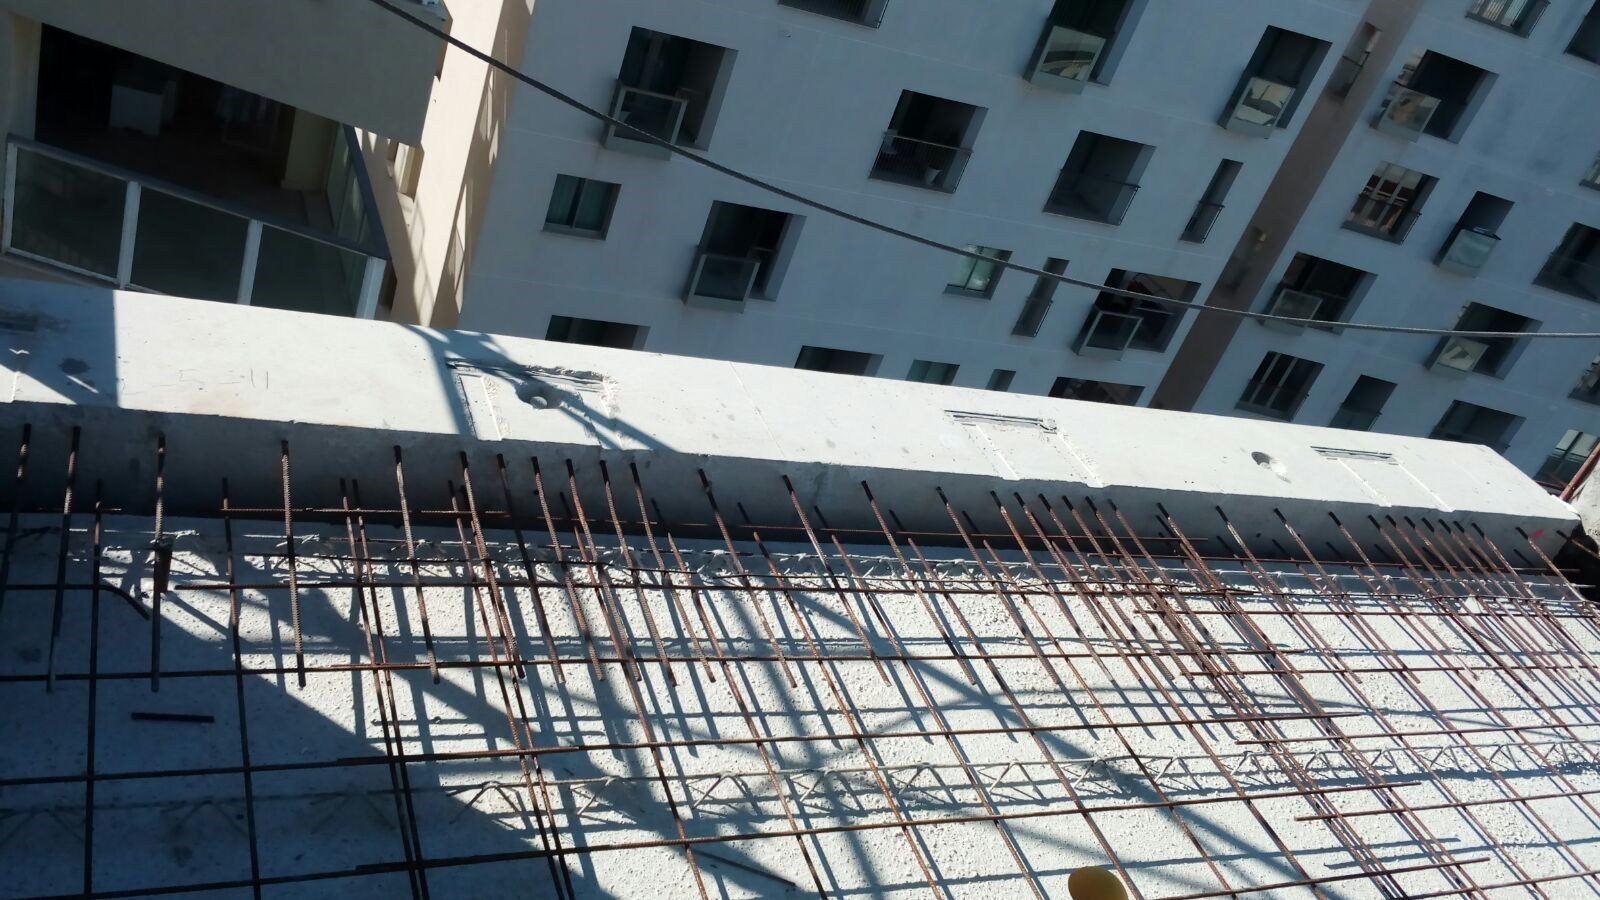 Installed edge Fascia Beam including Brackets prepared for the installation of the Glass Façade